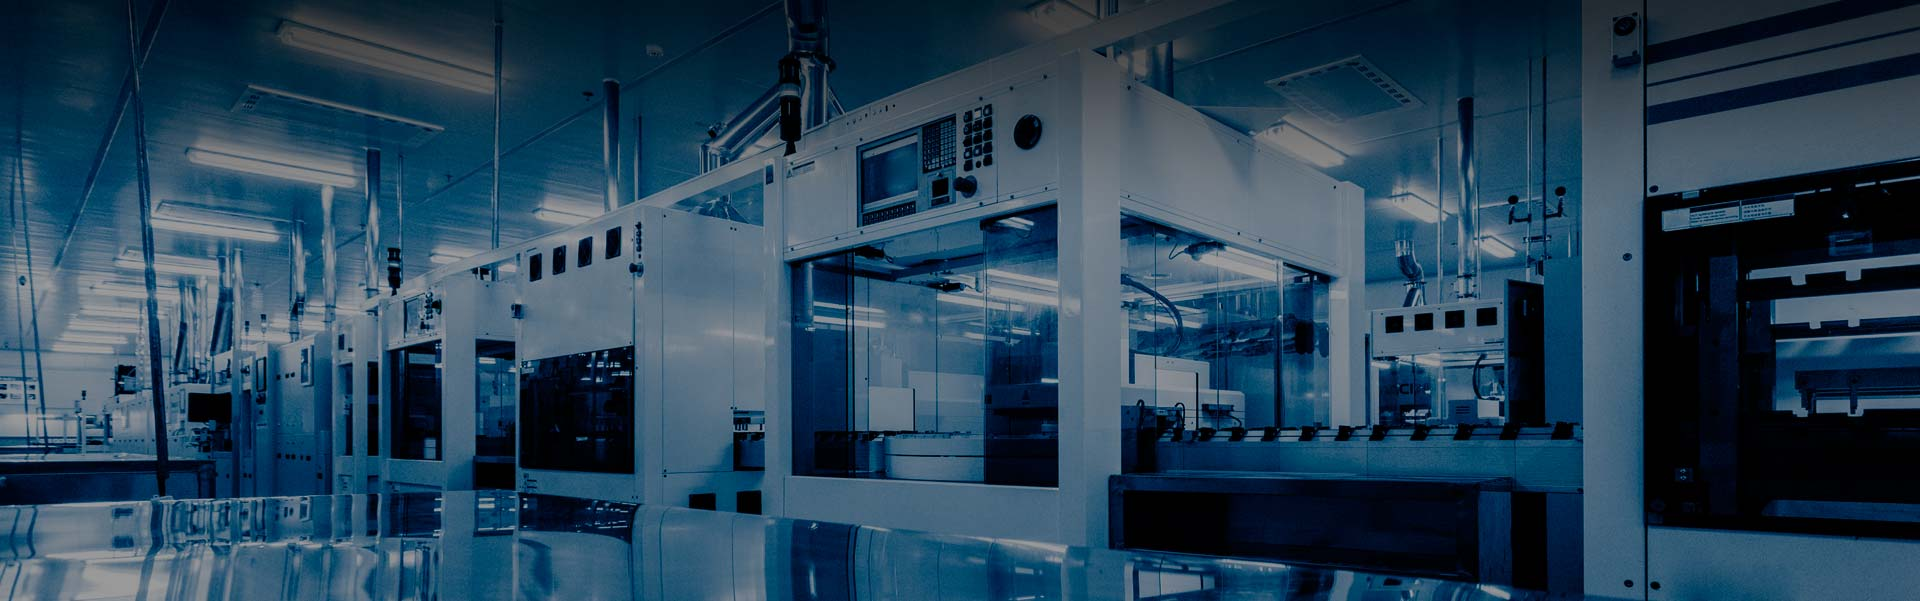 Highly Automated Production Line Planning and Optimization